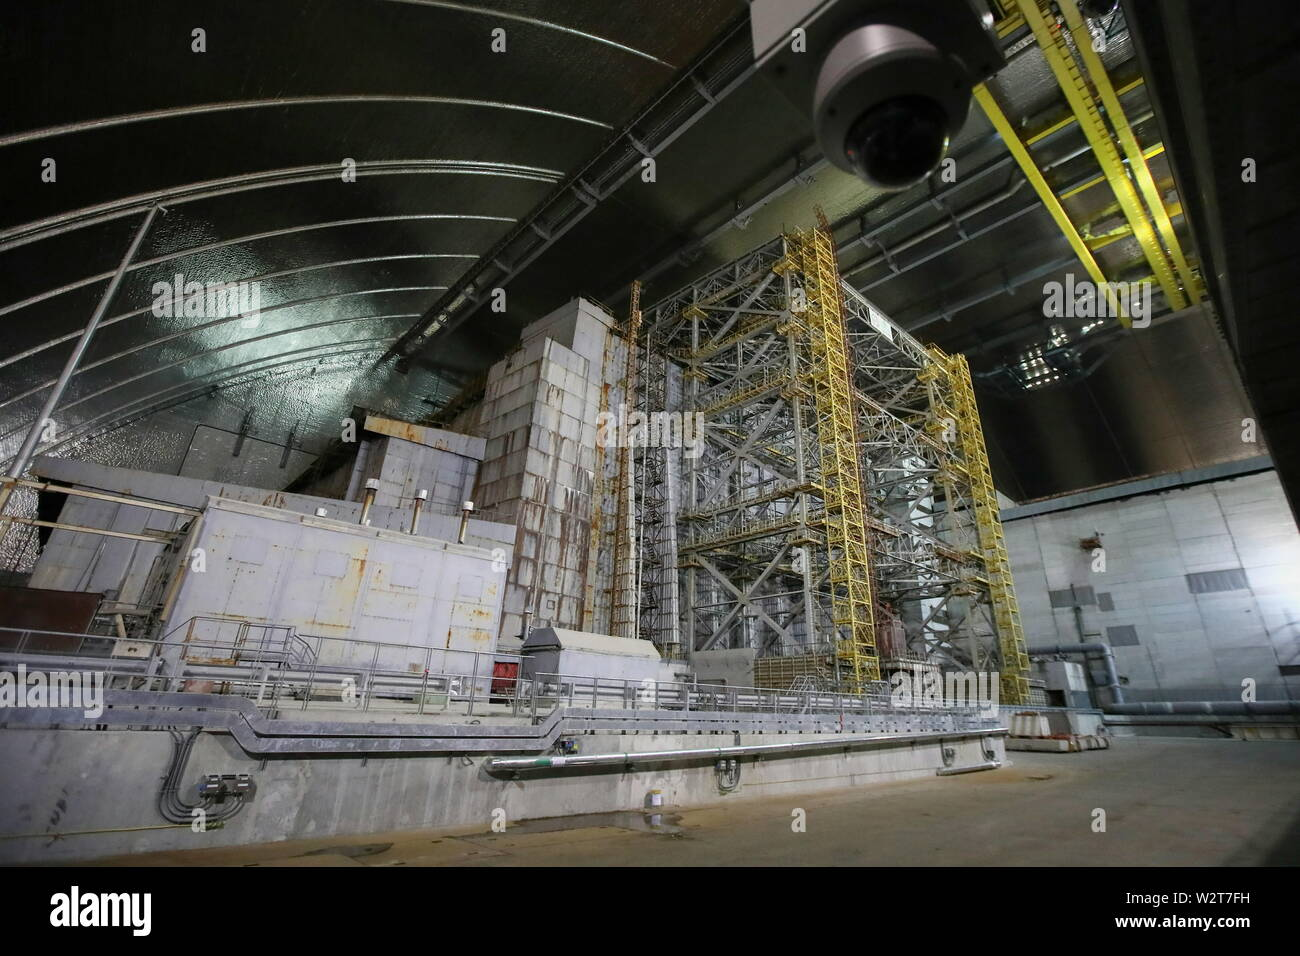 Pripyat, Ukraine. 10th July, 2019. PRIPYAT, UKRAINE - JULY 10, 2019: The image shows the older shelter protecting Reactor 4 of the Chernobyl Nuclear Power Plant under the new mobile metal structure, officially known as the New Safe Confinement, which has been officially handed over by the EU to the Ukrainian authorities; the construction of the 1.5bn euro metal shelter began in 2012; Reactor 4 is the site of the 1986 Chernobyl disaster; the older shelter is to be dismantled. Pyotr Sivkov/TASS Credit: ITAR-TASS News Agency/Alamy Live News - Stock Image